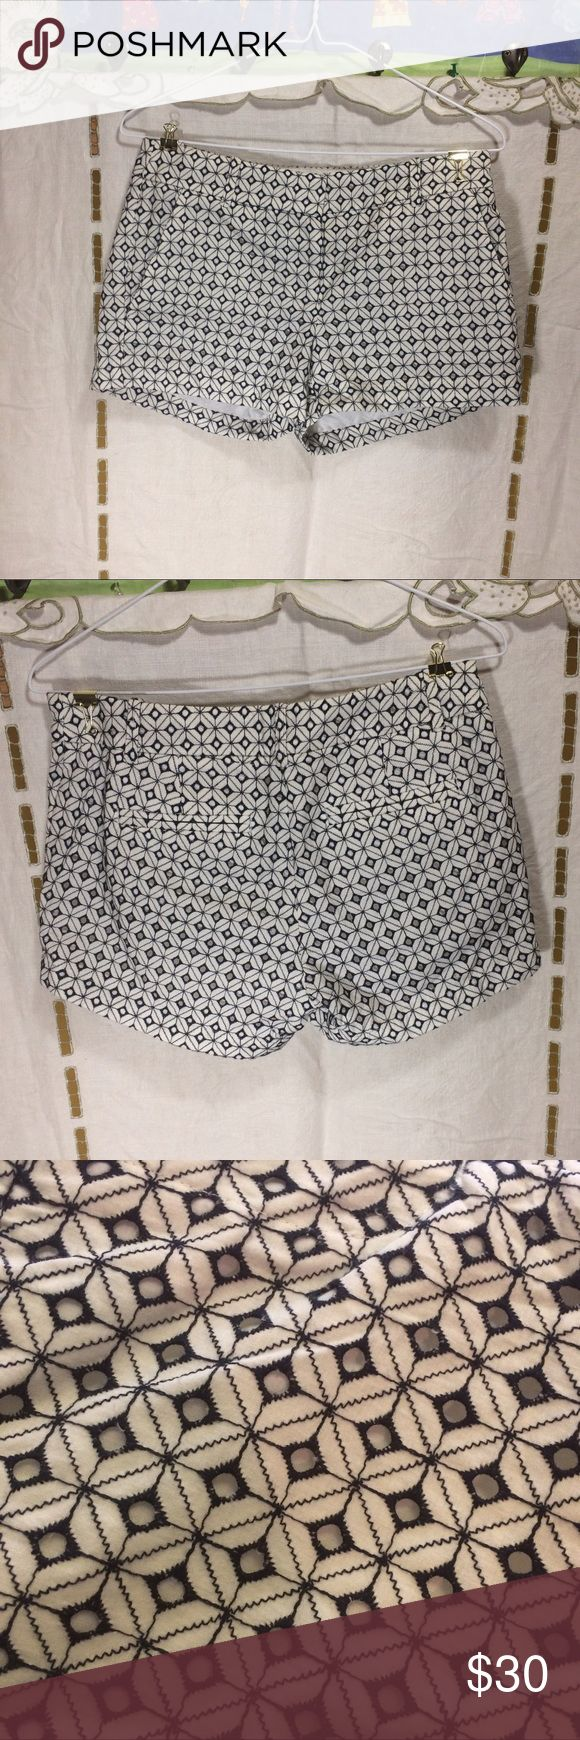 """J. Crew black and white shorts Woman's size 0 J. Crew black and white shorts new with tag. Black and white. The waist measures 15"""" flat across, the rise is 8"""" and the inseam is 2 3/4"""". J. Crew Shorts"""